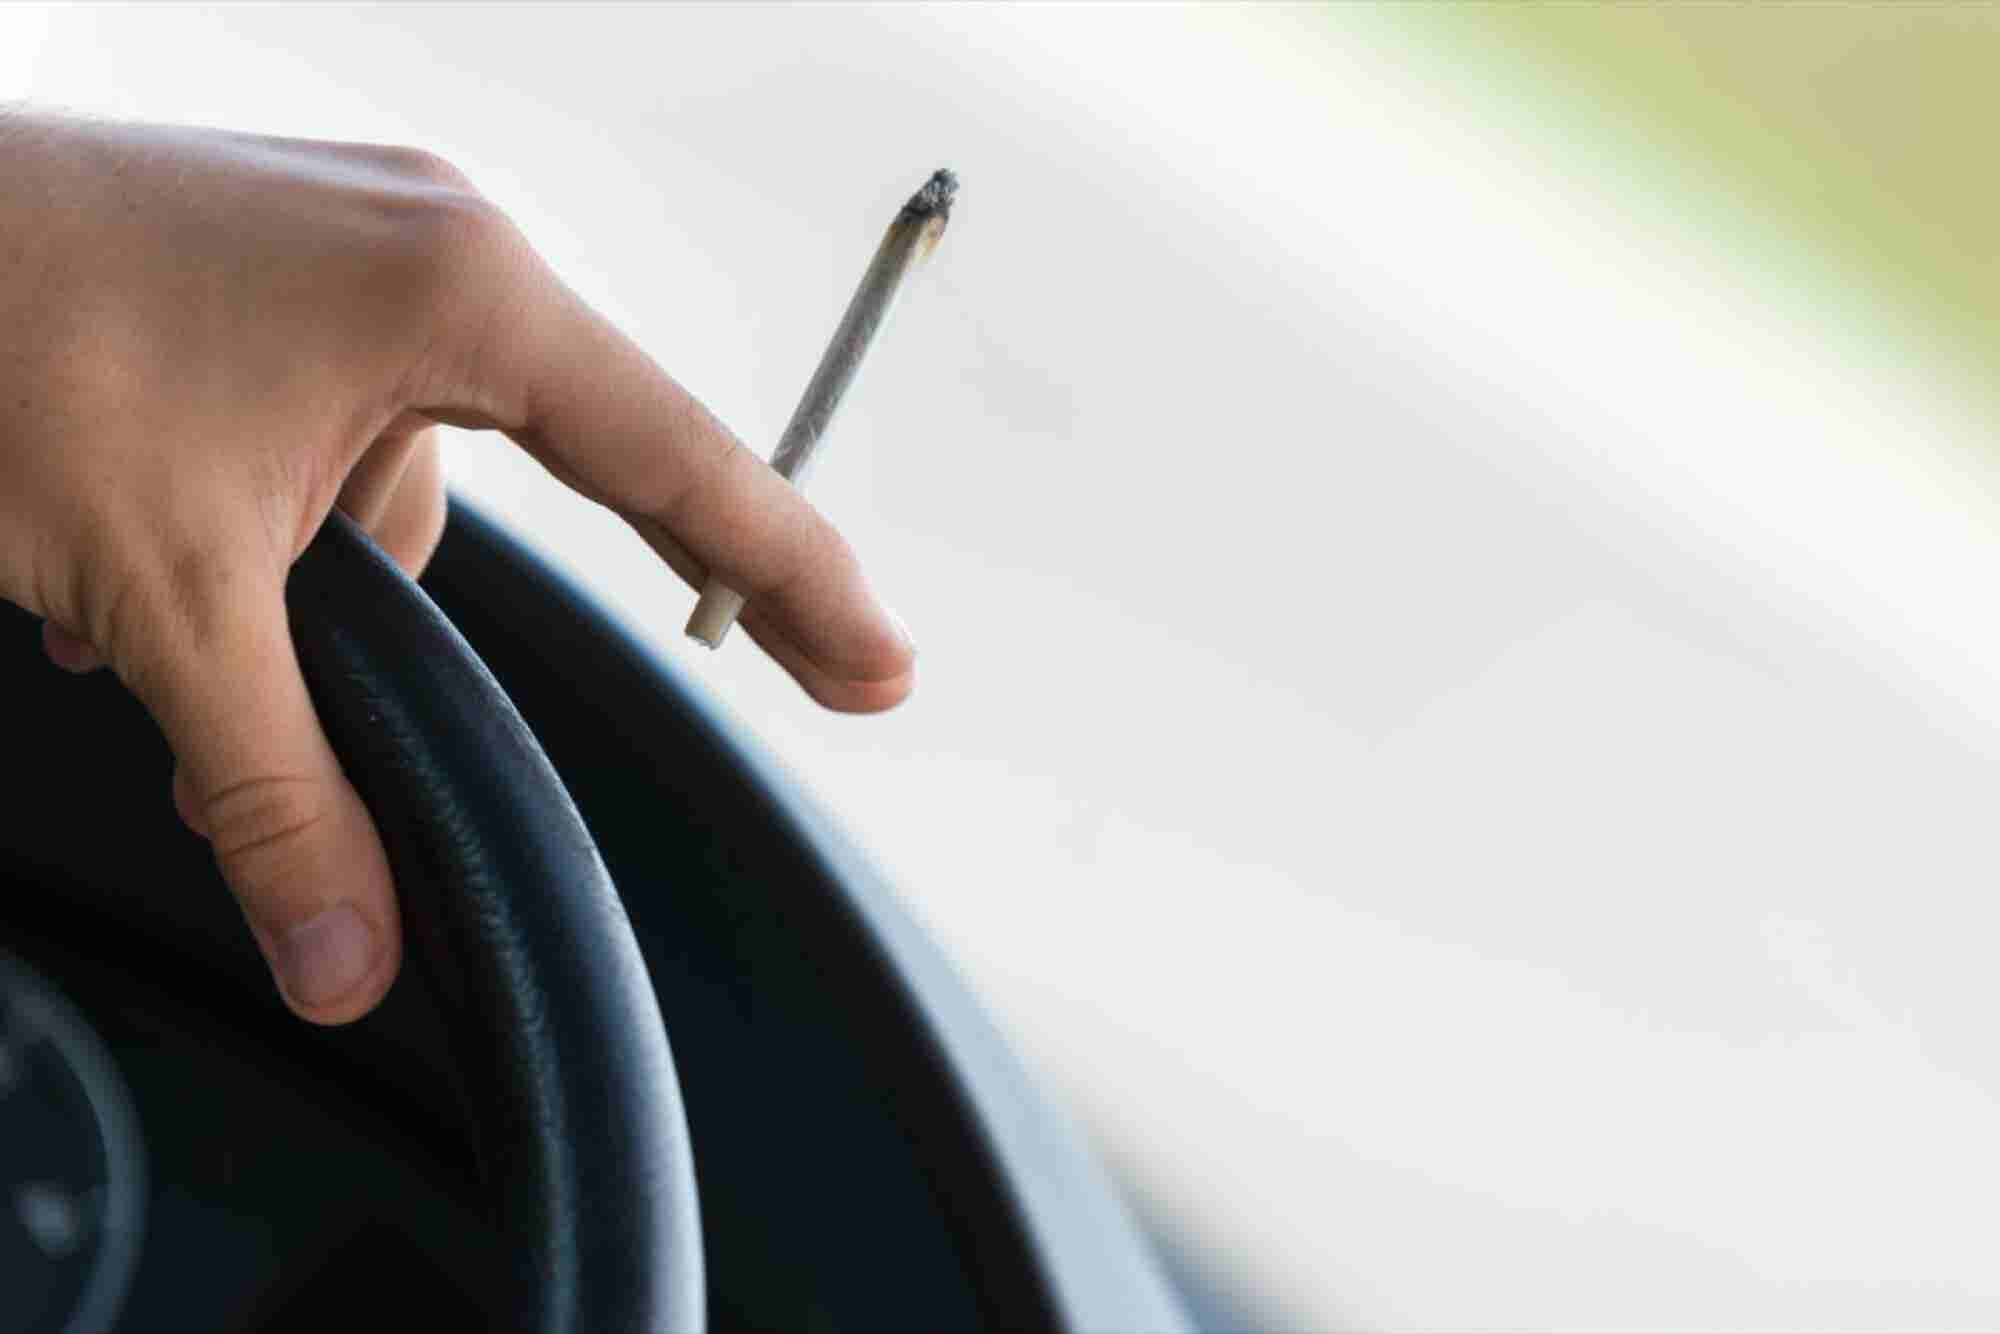 Colorado Starts a 'Cannabis Conversation' On Driving While High